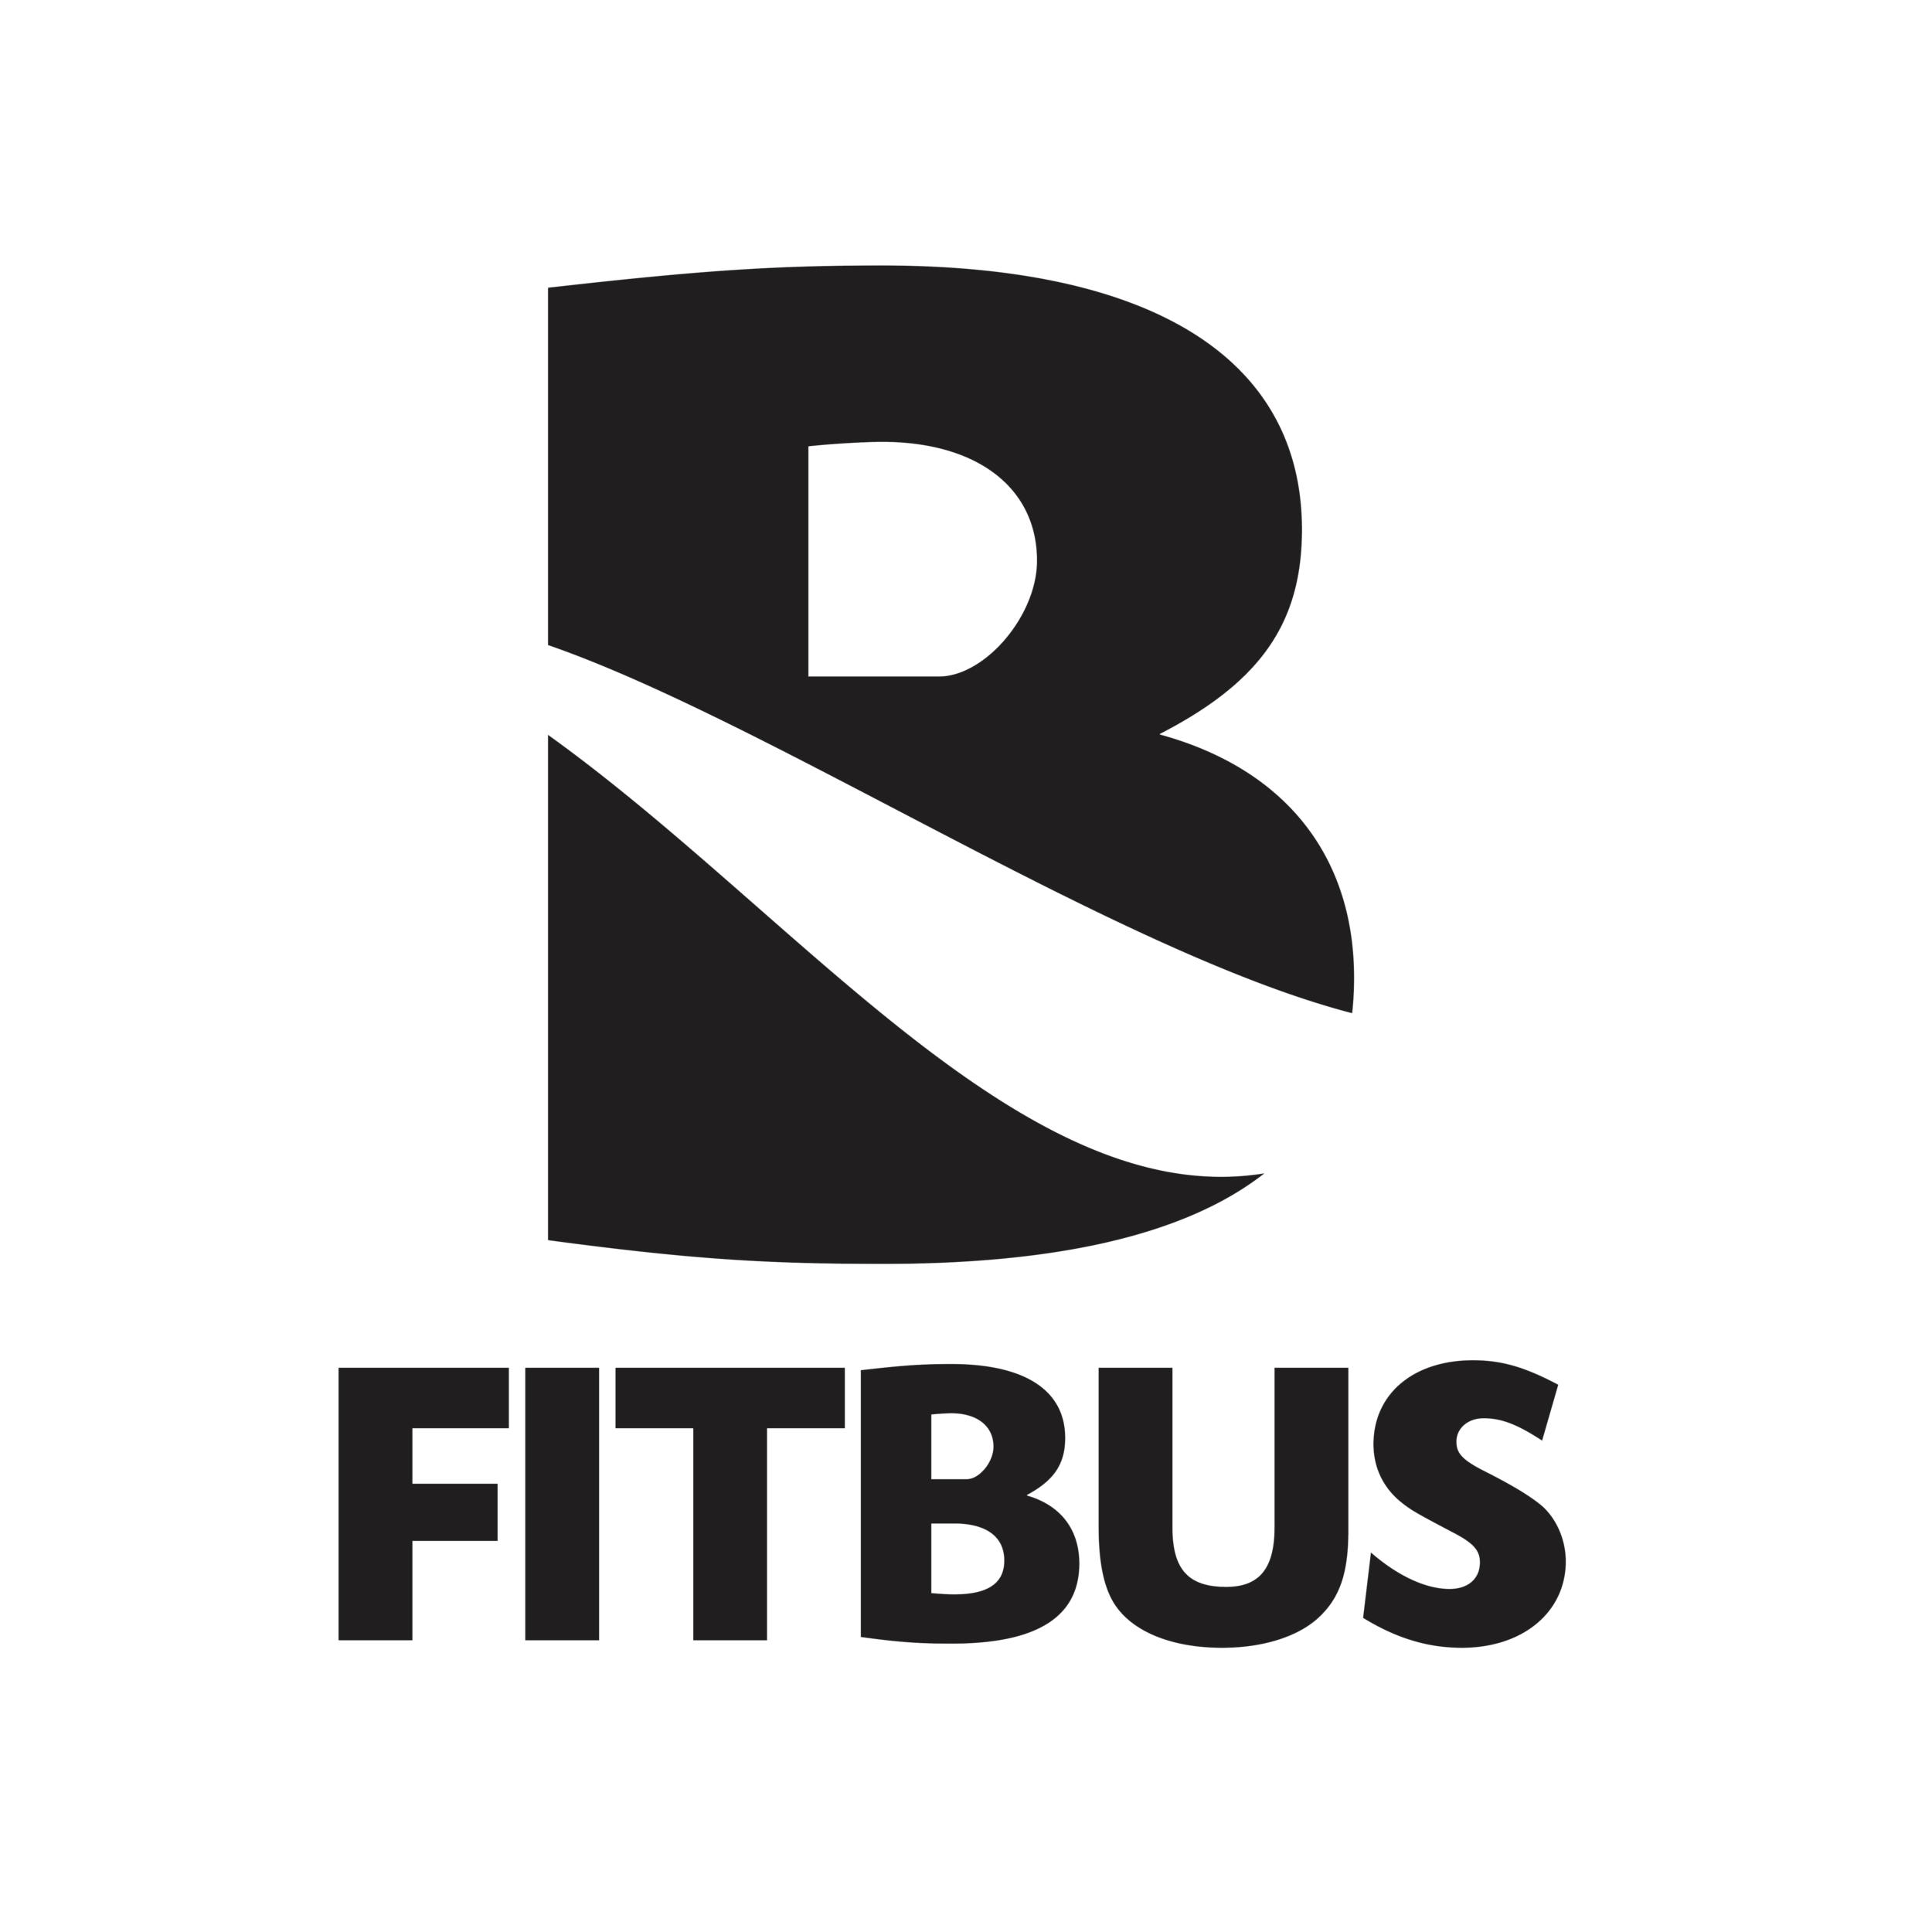 logo fitbus goed.png